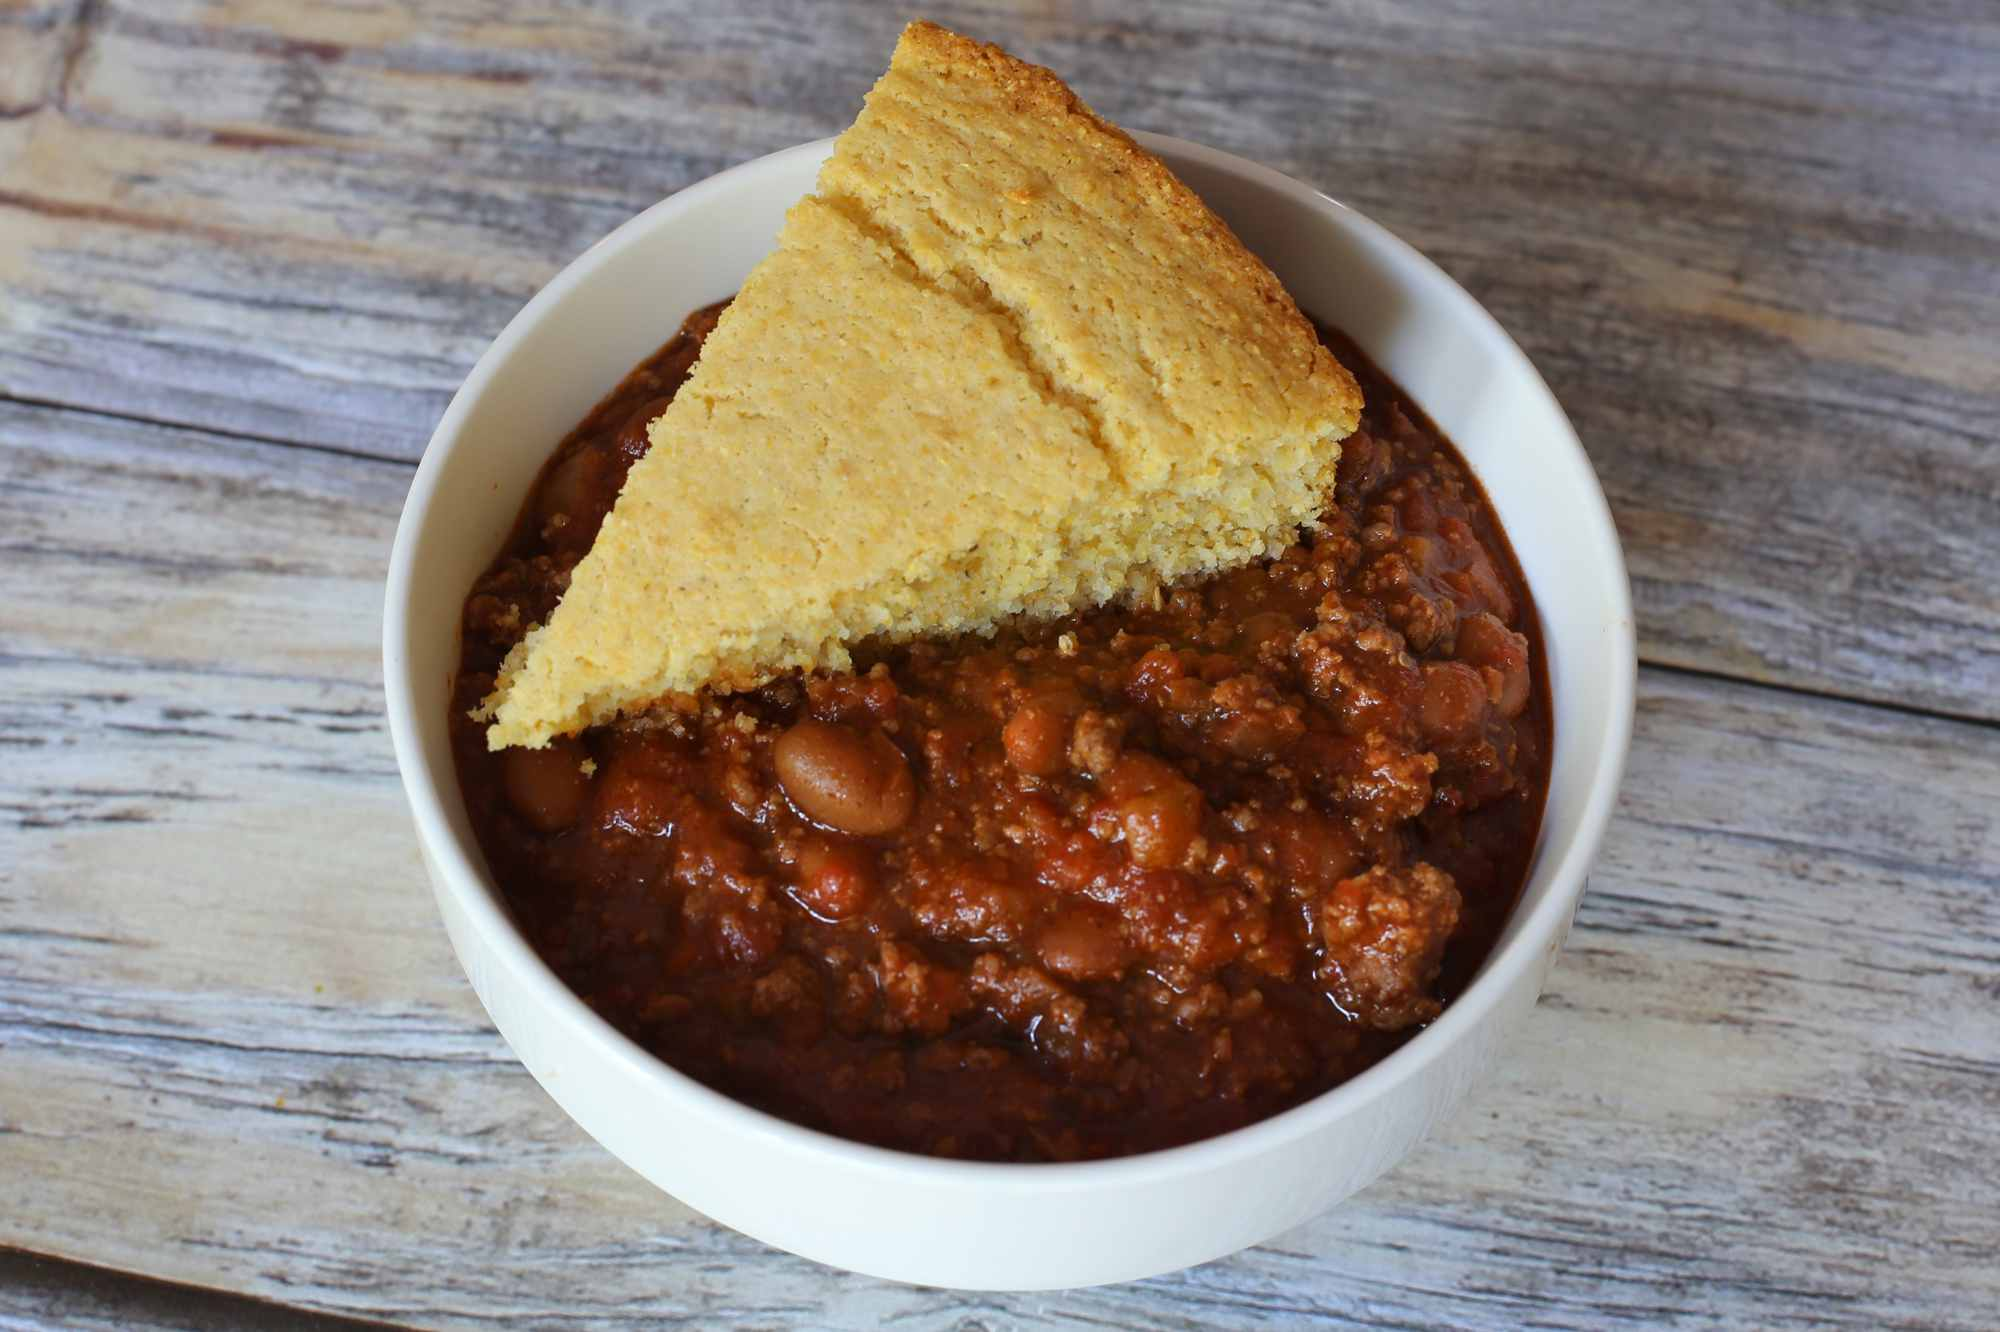 Image result for chili with cornbread